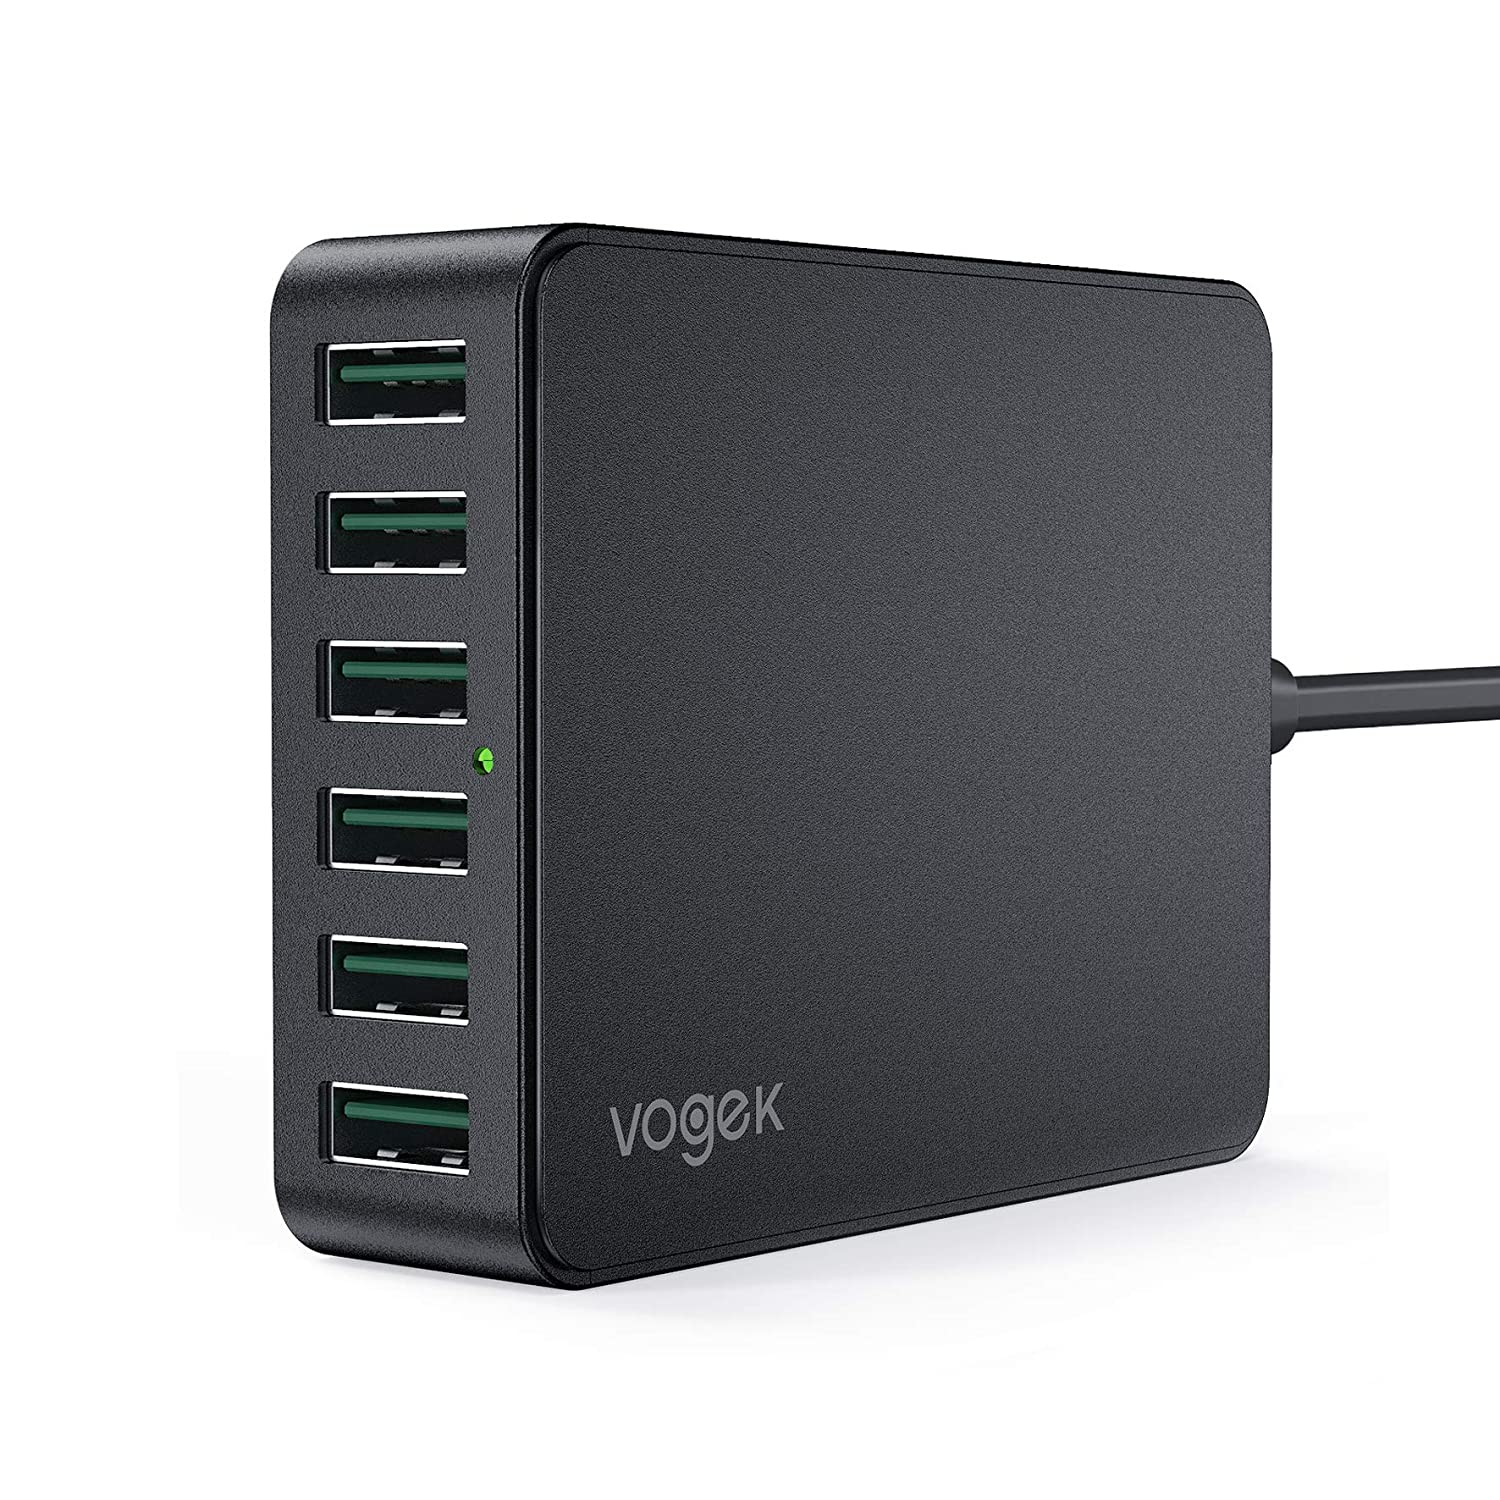 USB Charger, Vogek 60W 12A 6-Port USB Charging Station Multi Ports Desktop Charger with Smart Identification Compatible with Cellphones Tablets - Iron Gray